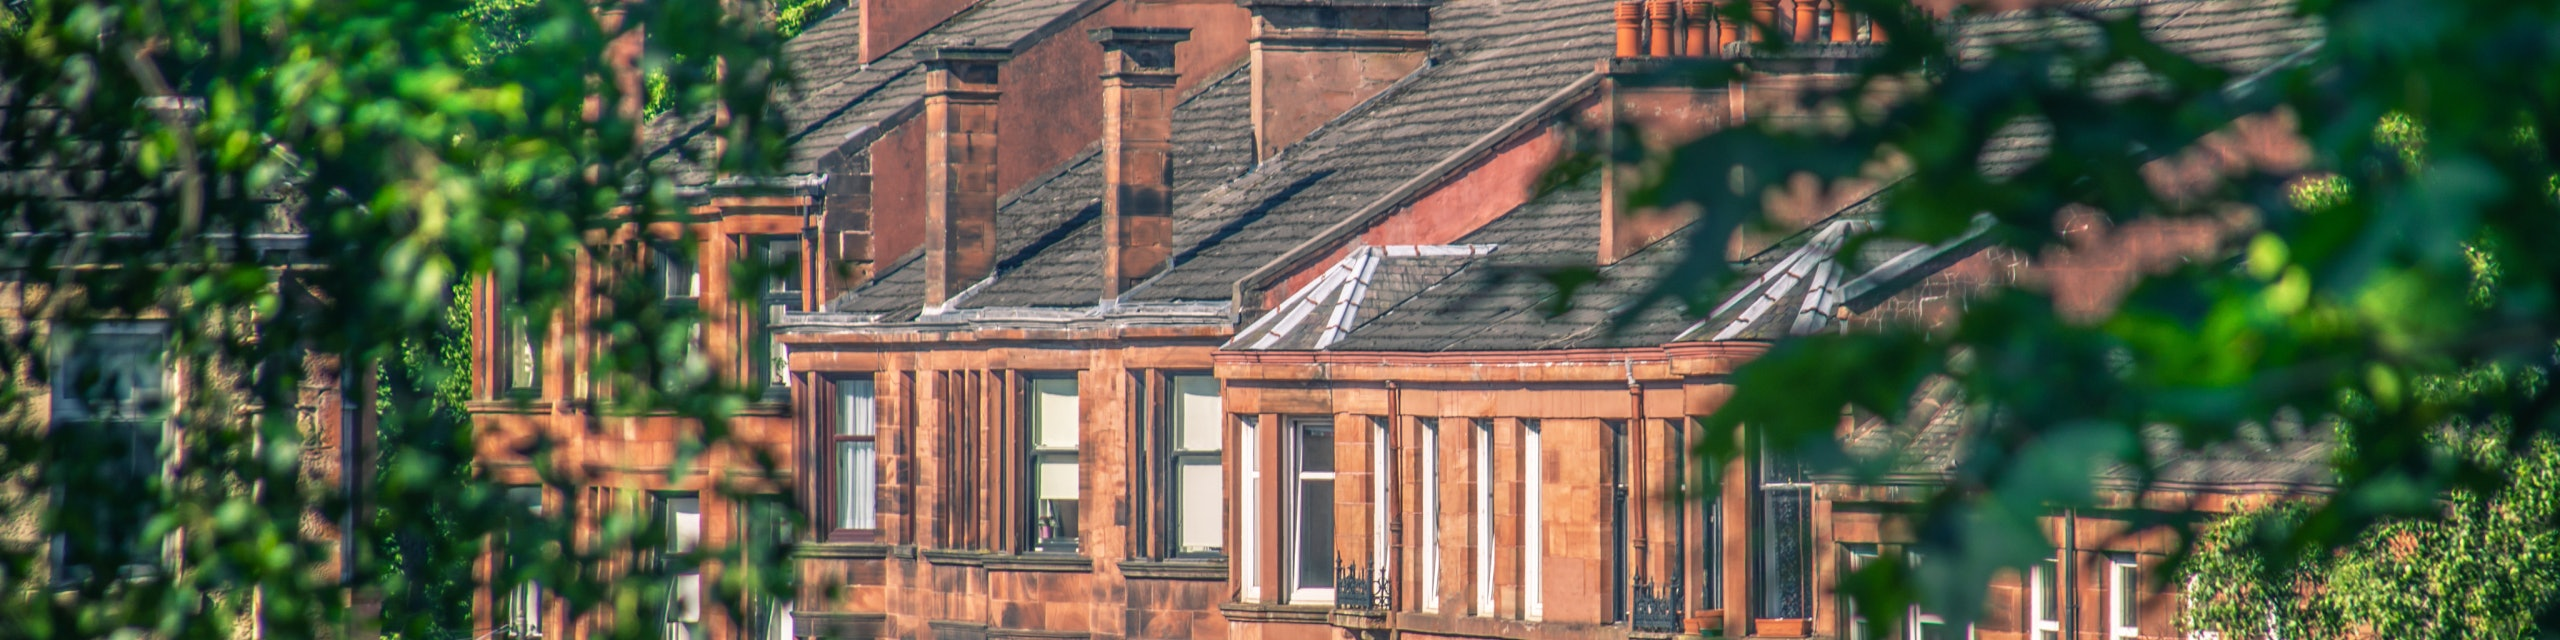 A row of houses in Glasgow